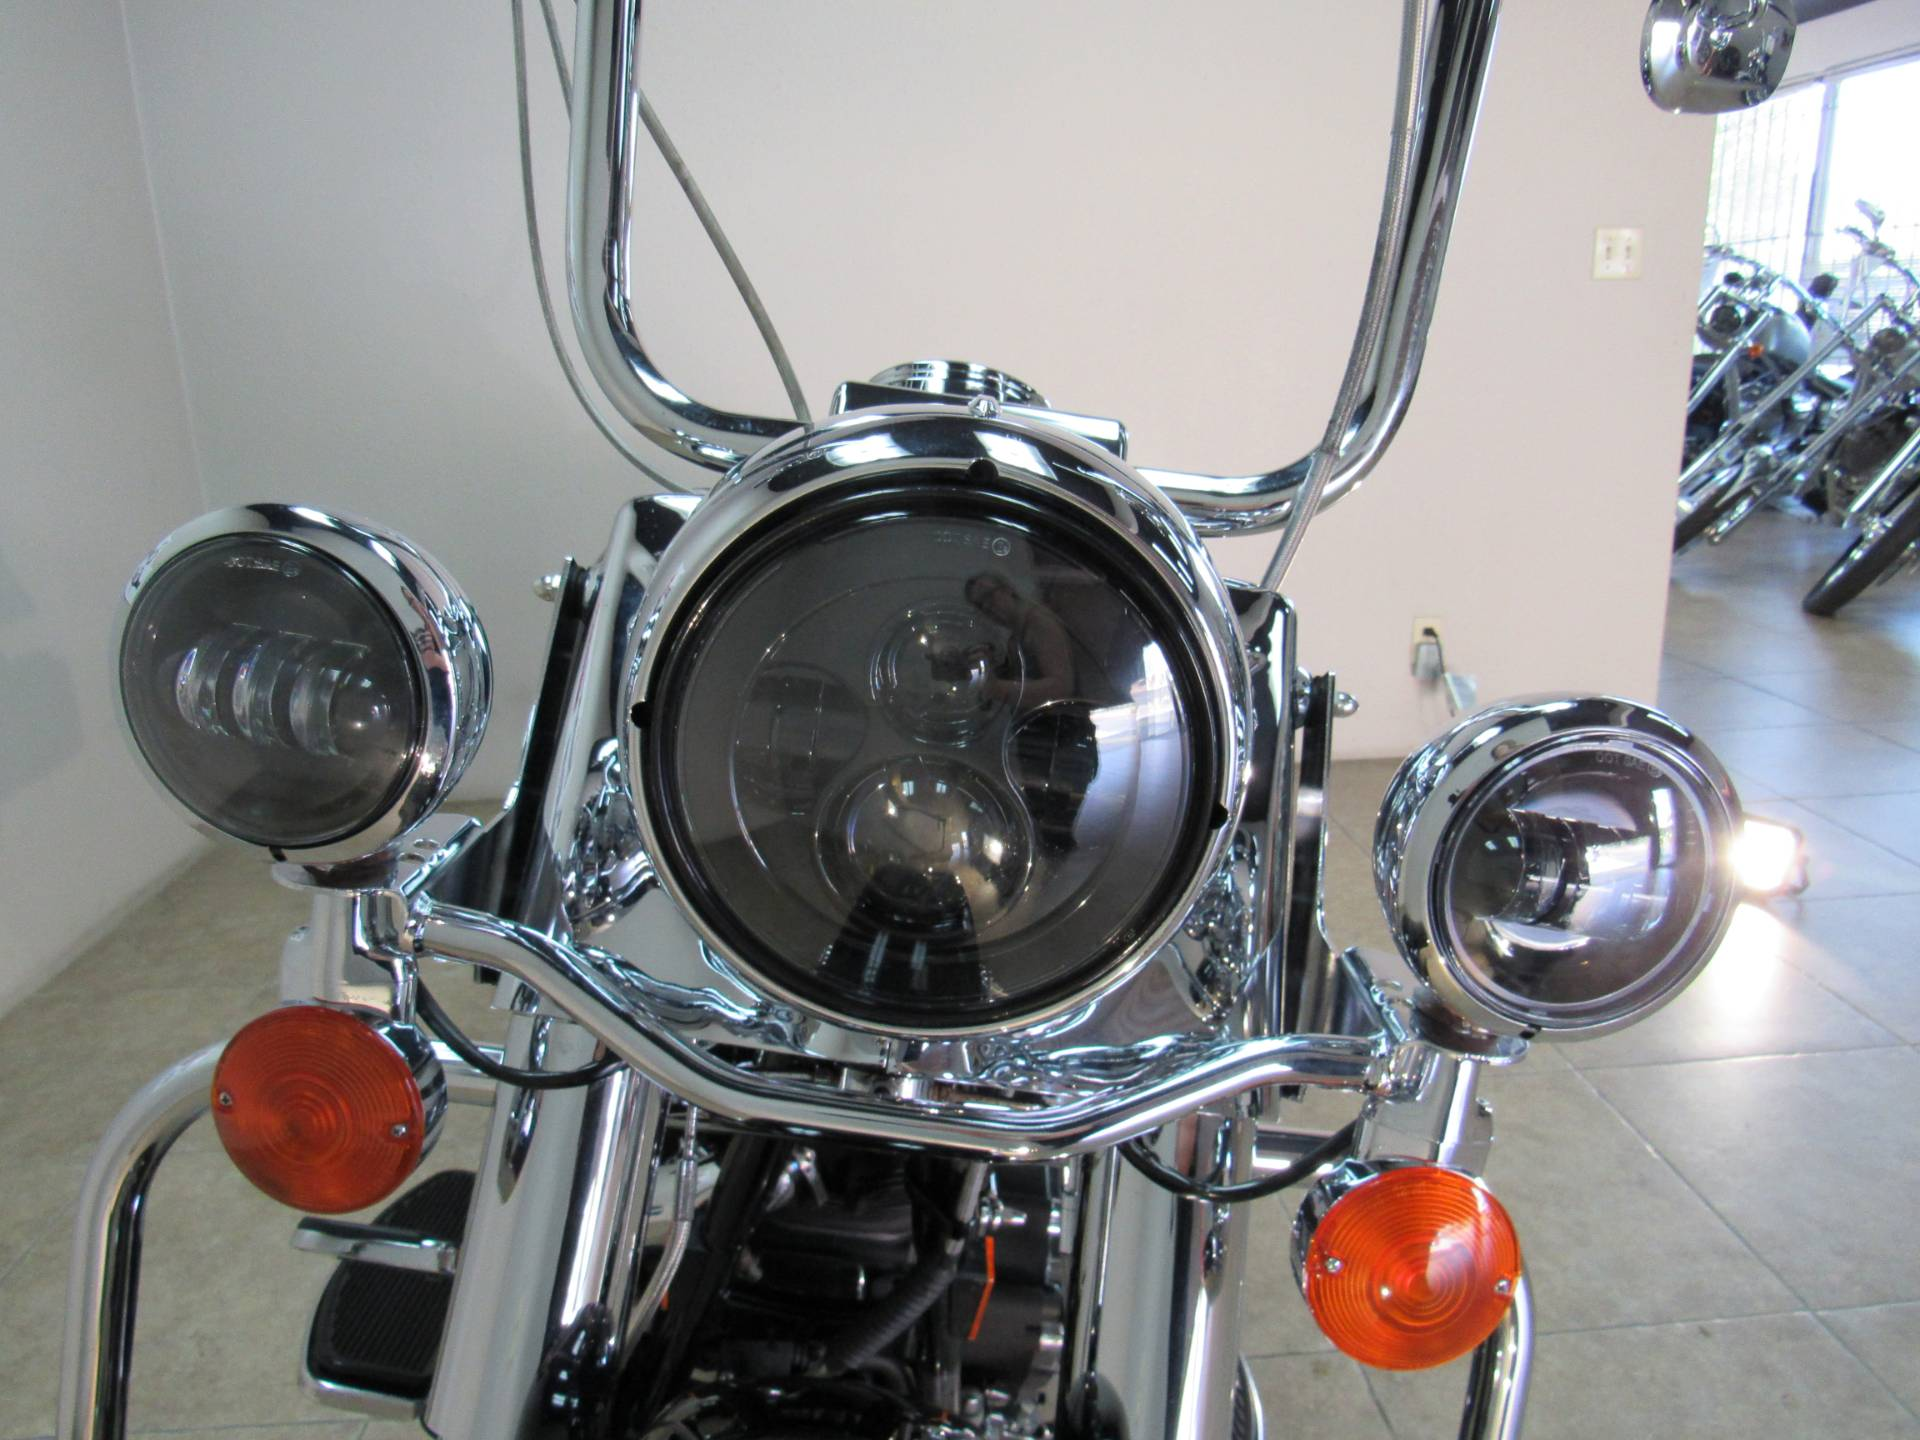 2007 Harley-Davidson FLHRC Road King® Classic in Temecula, California - Photo 10